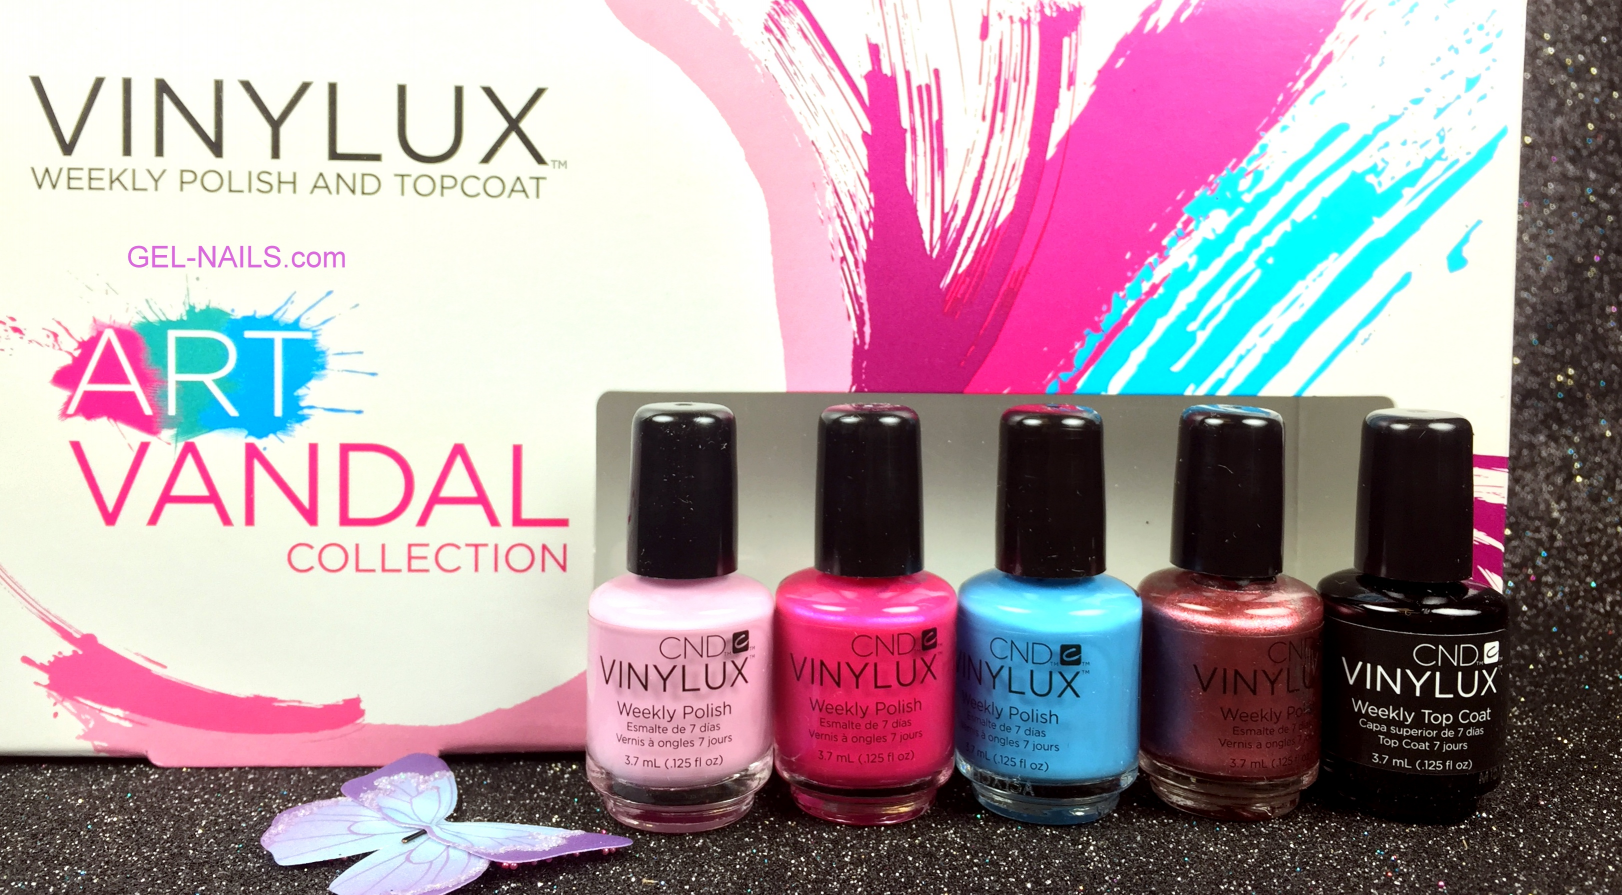 CND VINYLUX: A Stunning Addition To Shellac Nail Colors